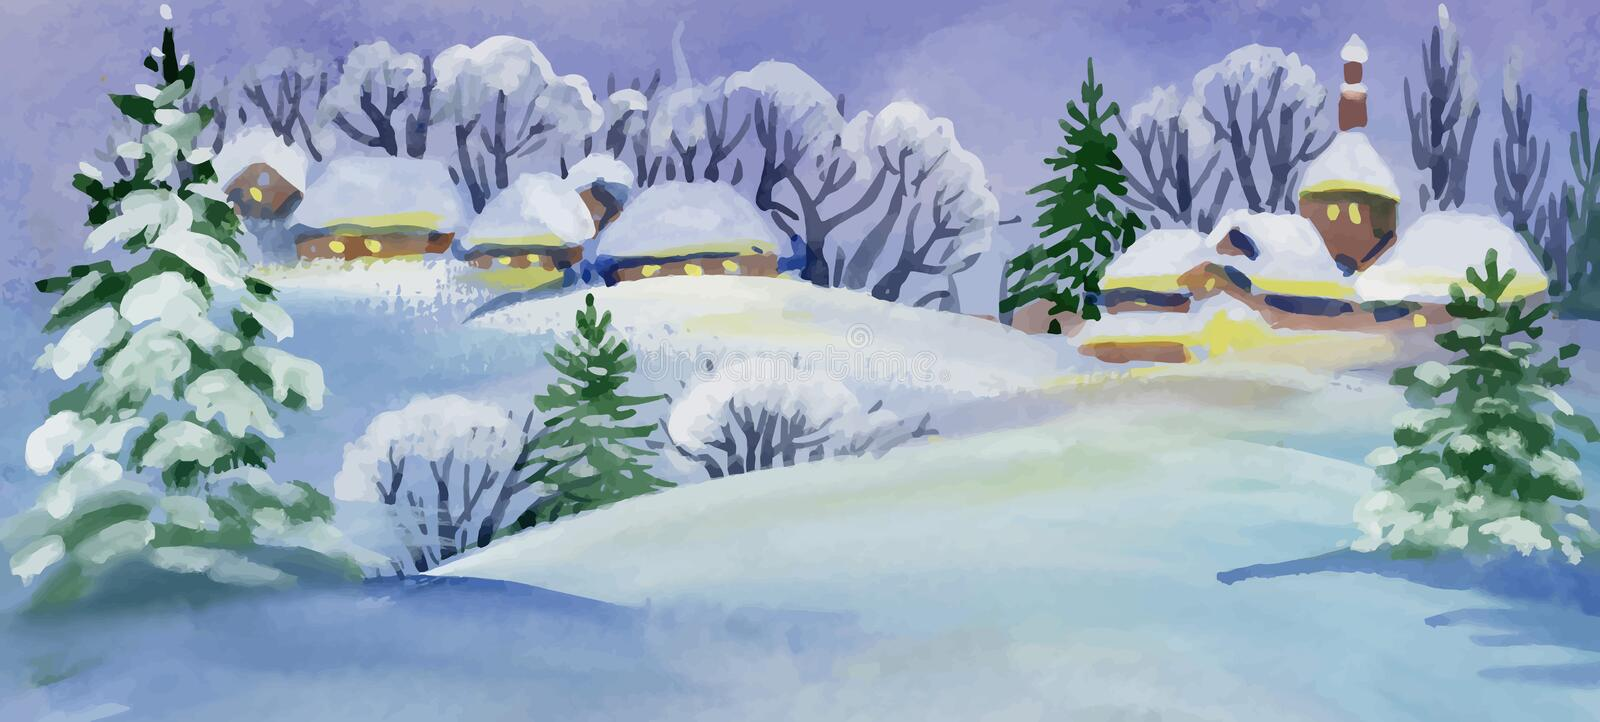 Watercolor winter landscape with snowy houses illustration. royalty free illustration